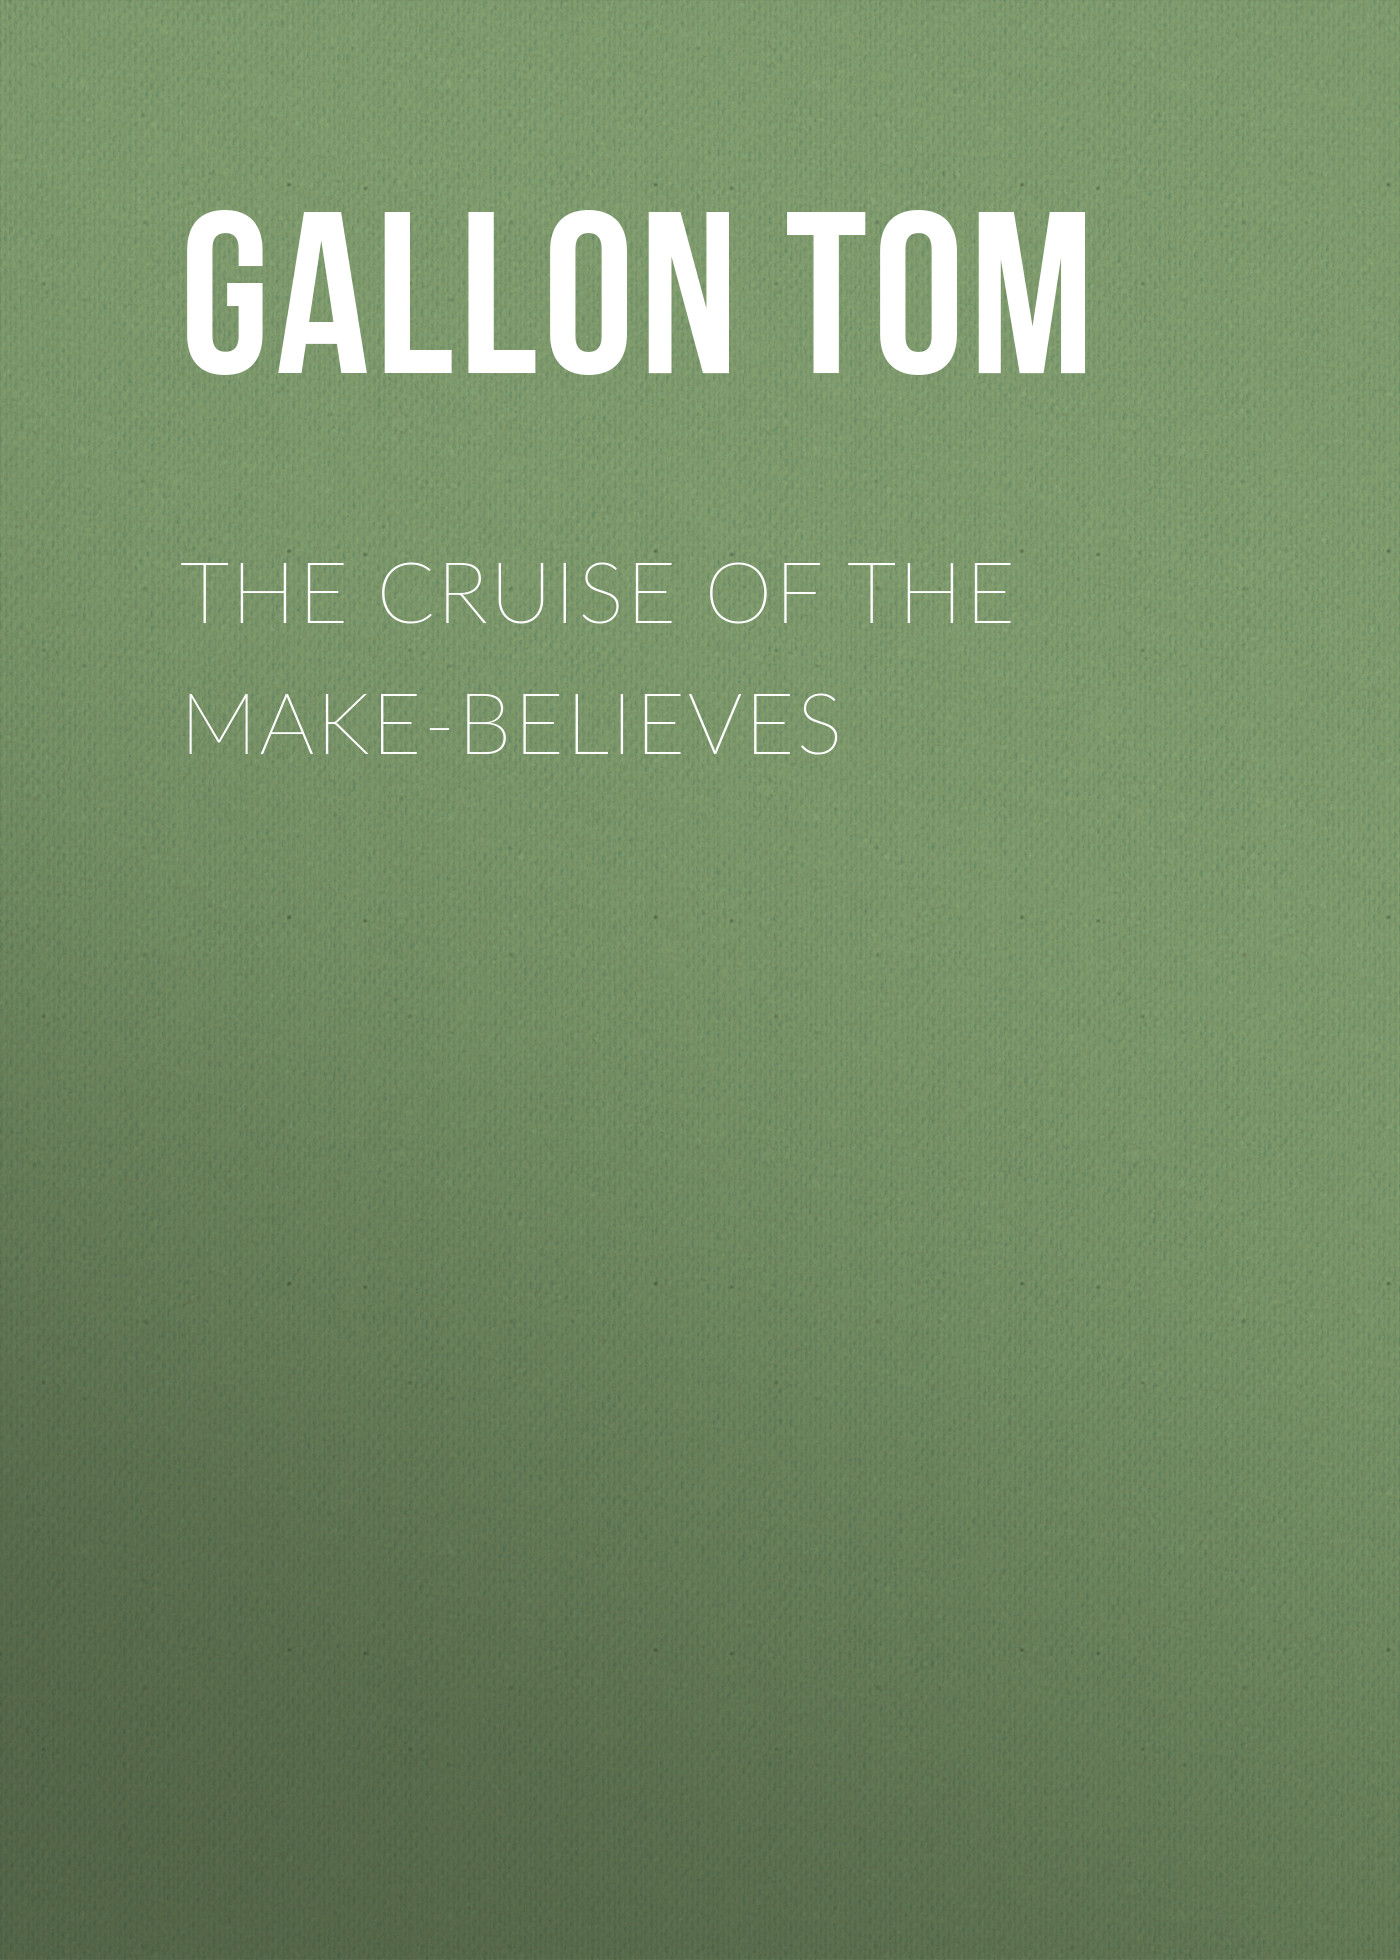 цены на Gallon Tom The Cruise of the Make-Believes  в интернет-магазинах